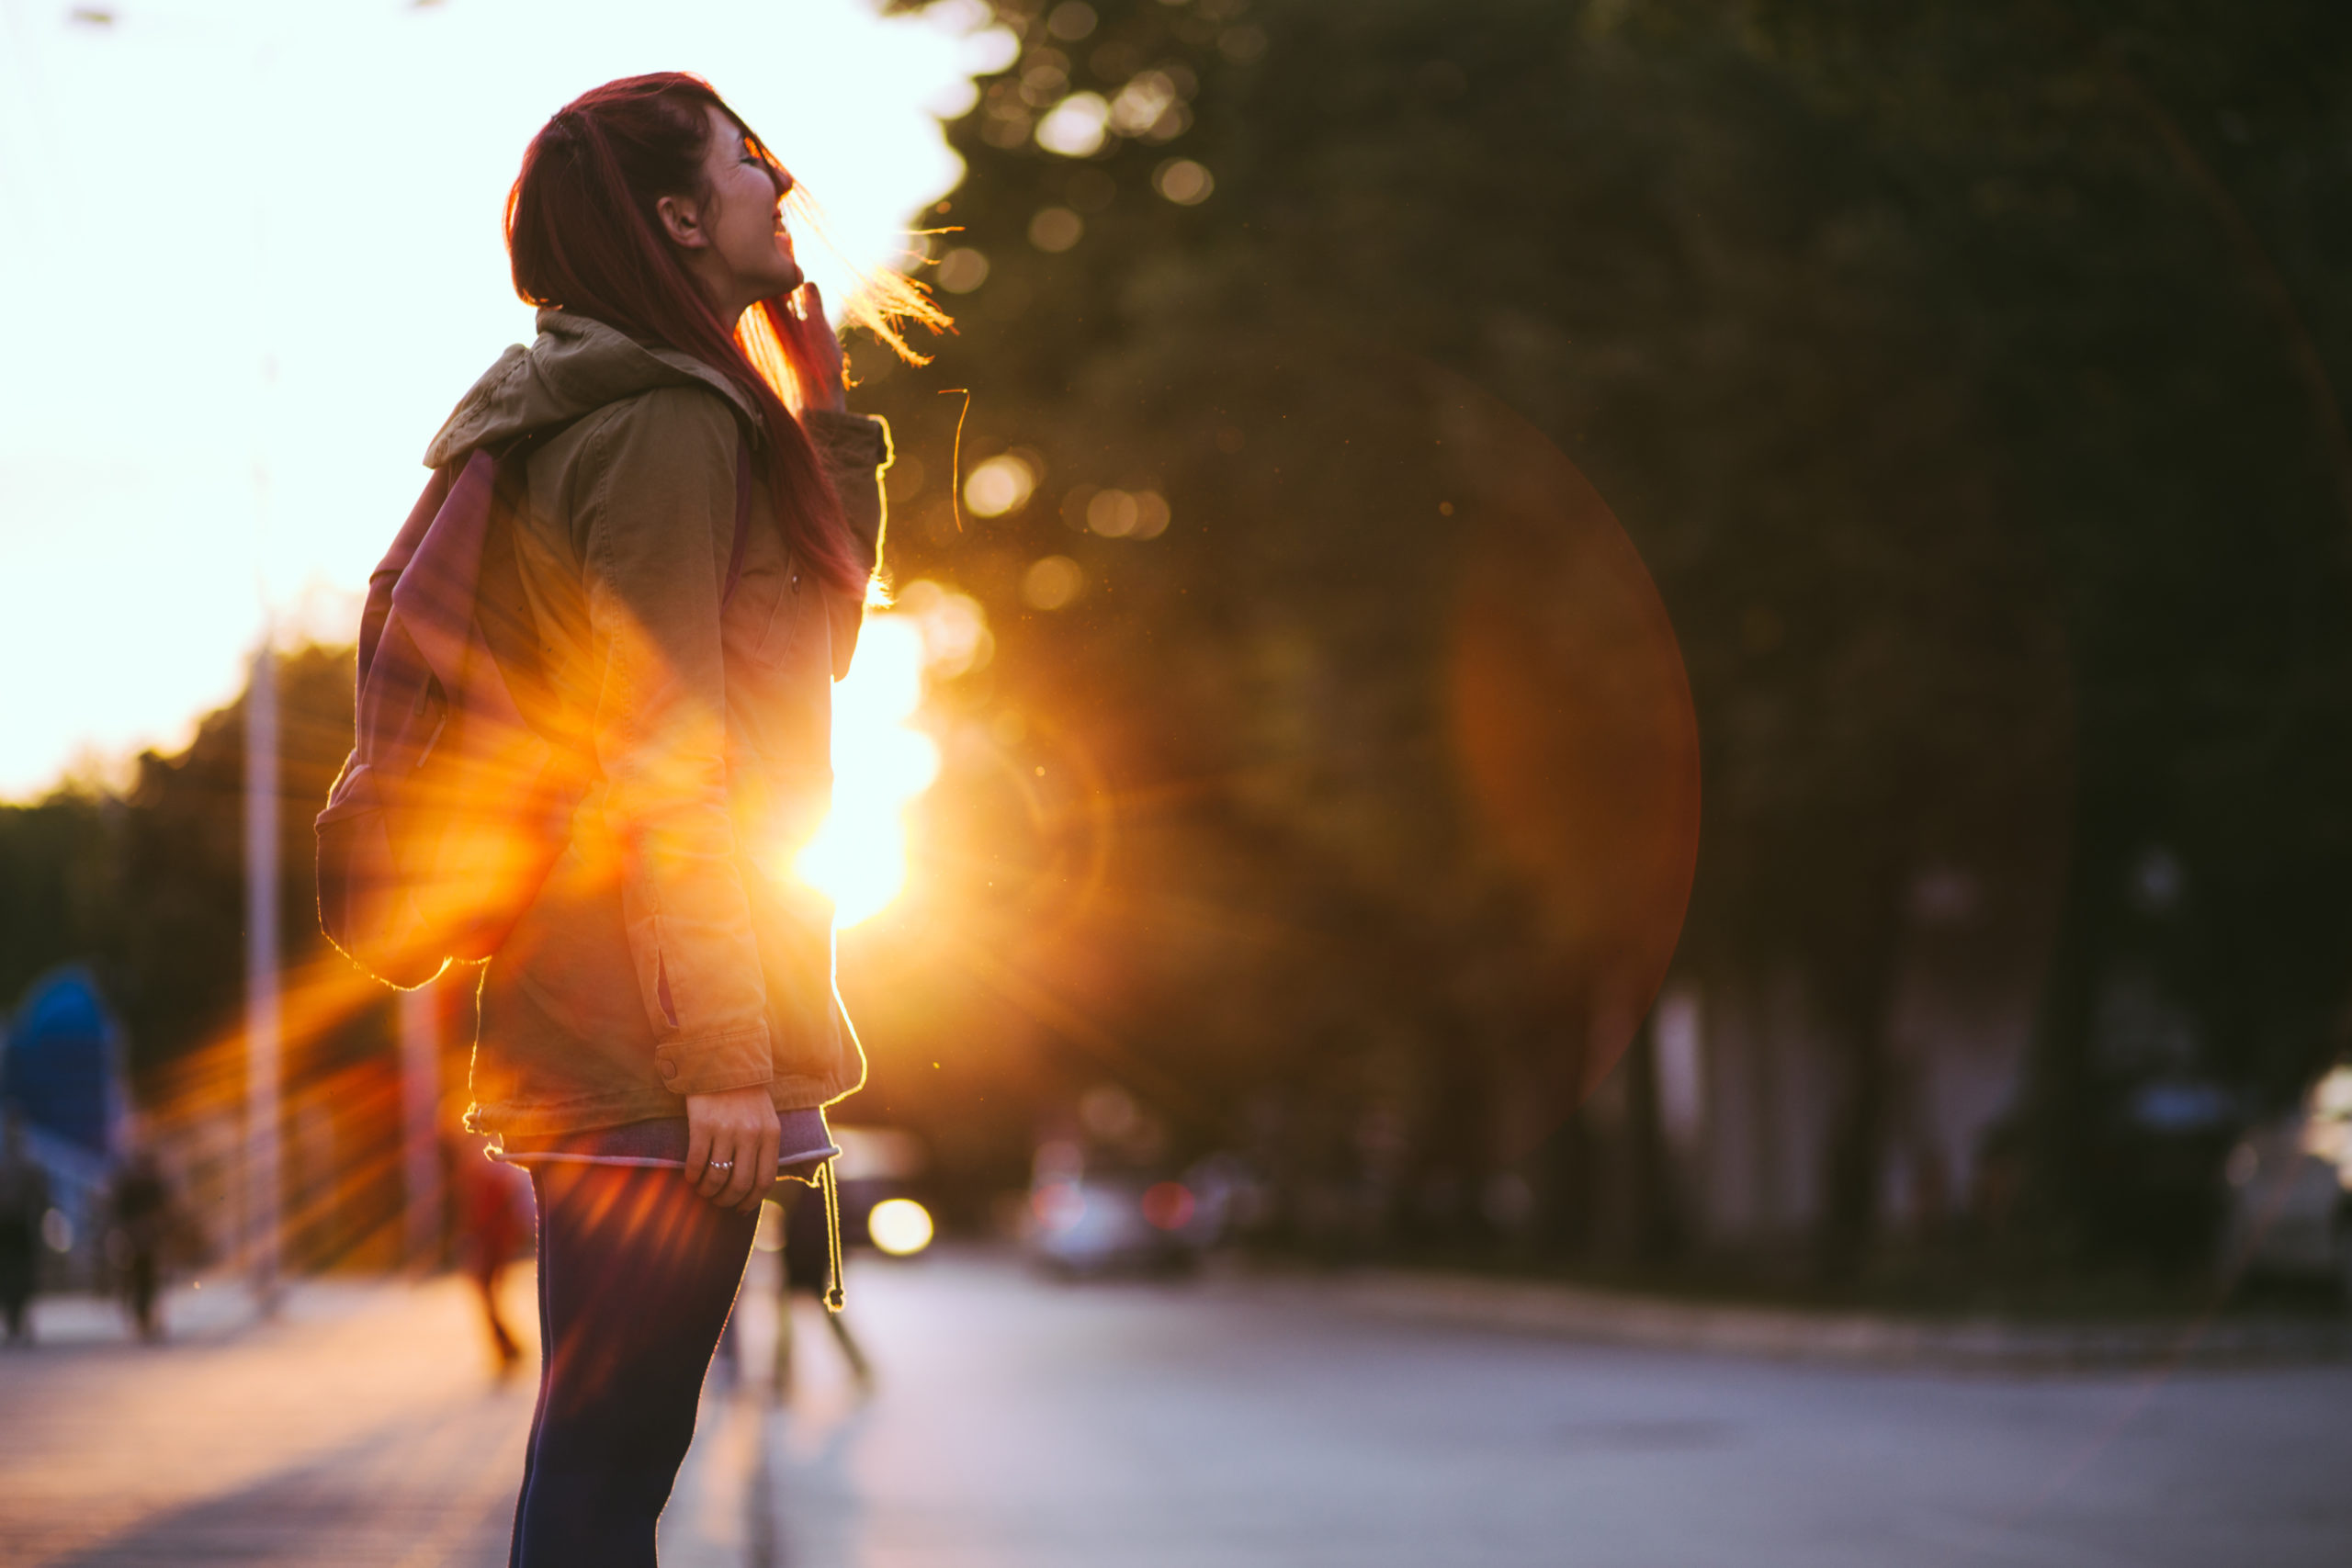 Smiling Young Red-haired woman dressed in jacket is enjoying vivid sunset in the streets.